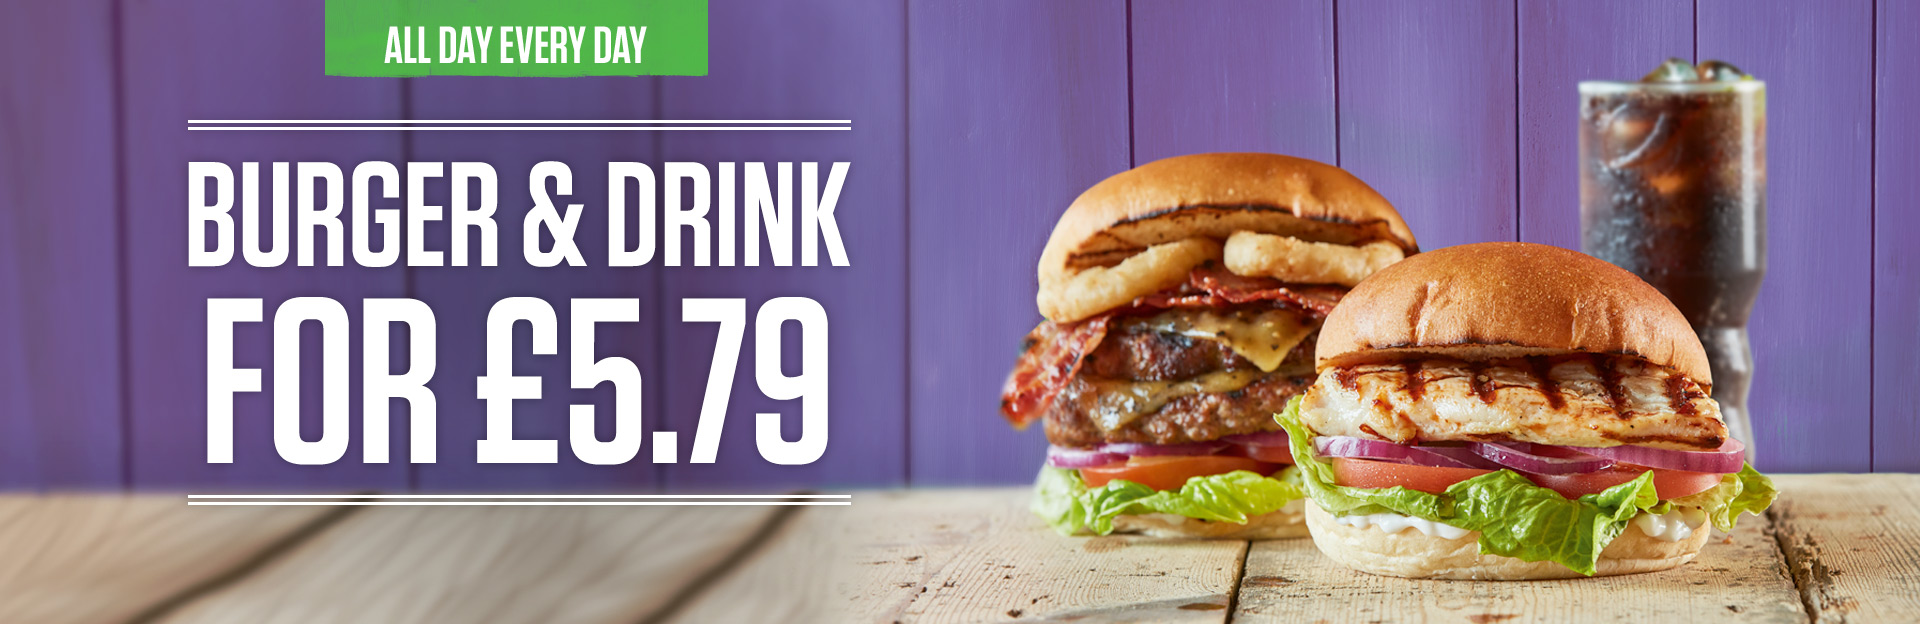 Burger and Drink Deal at The Springcroft